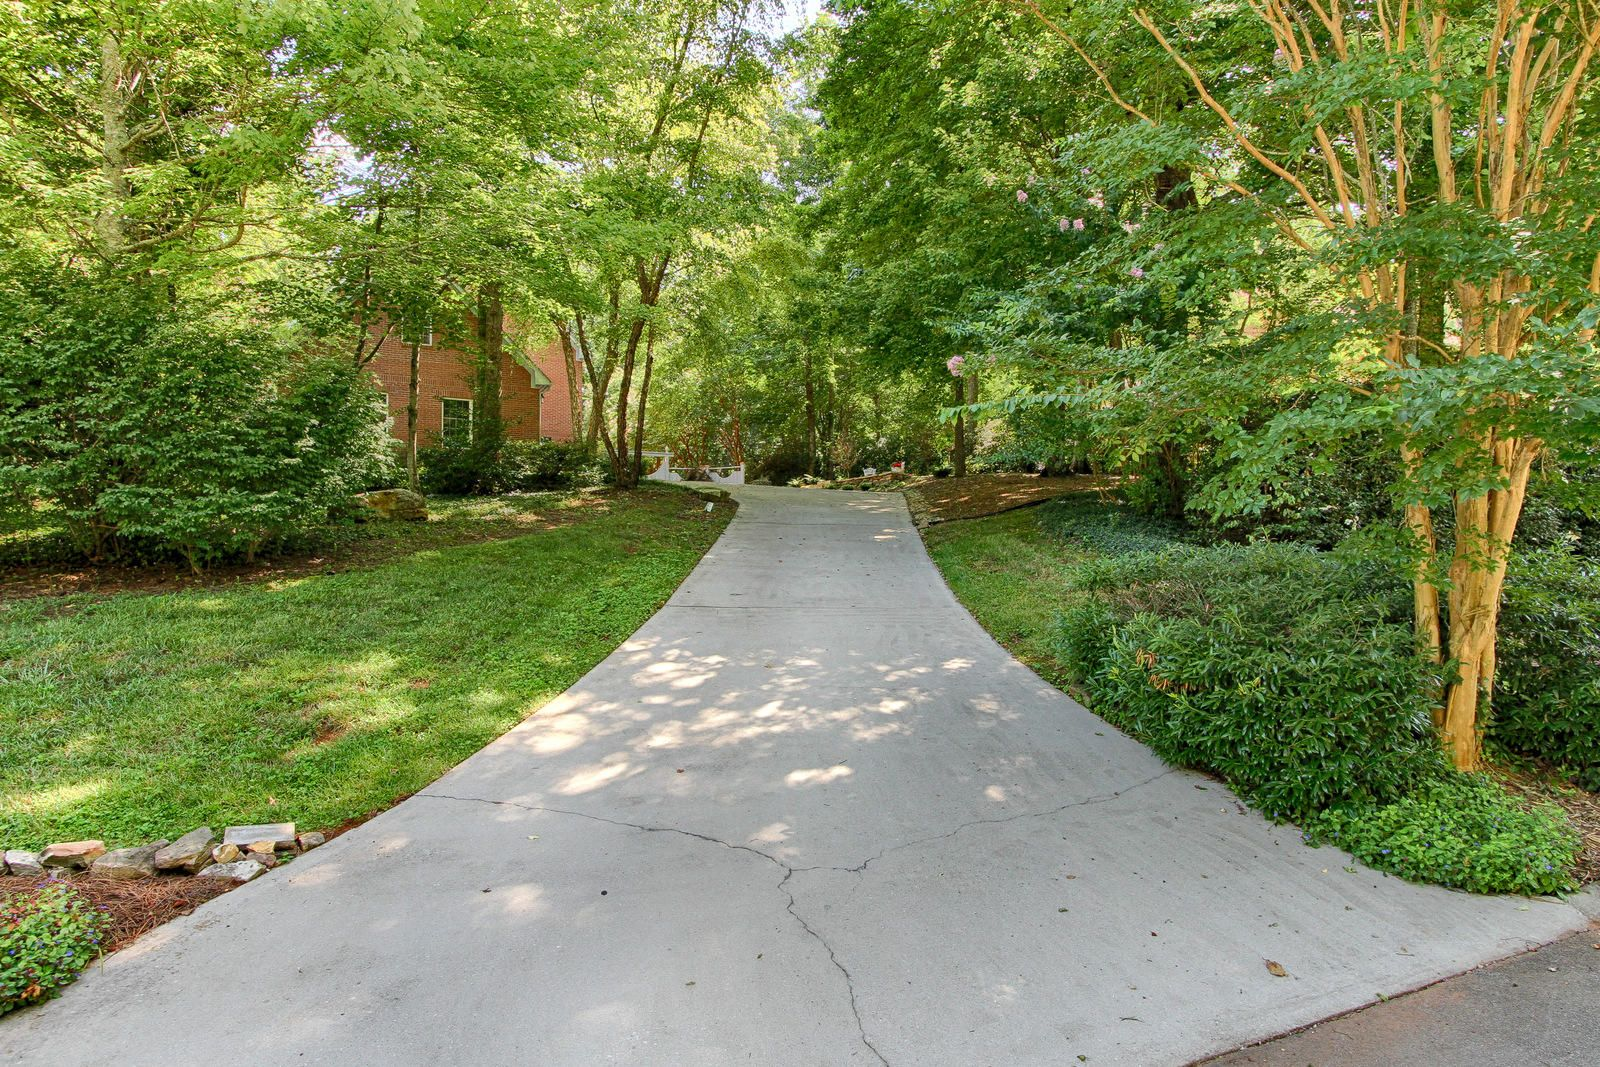 Driveway to Home